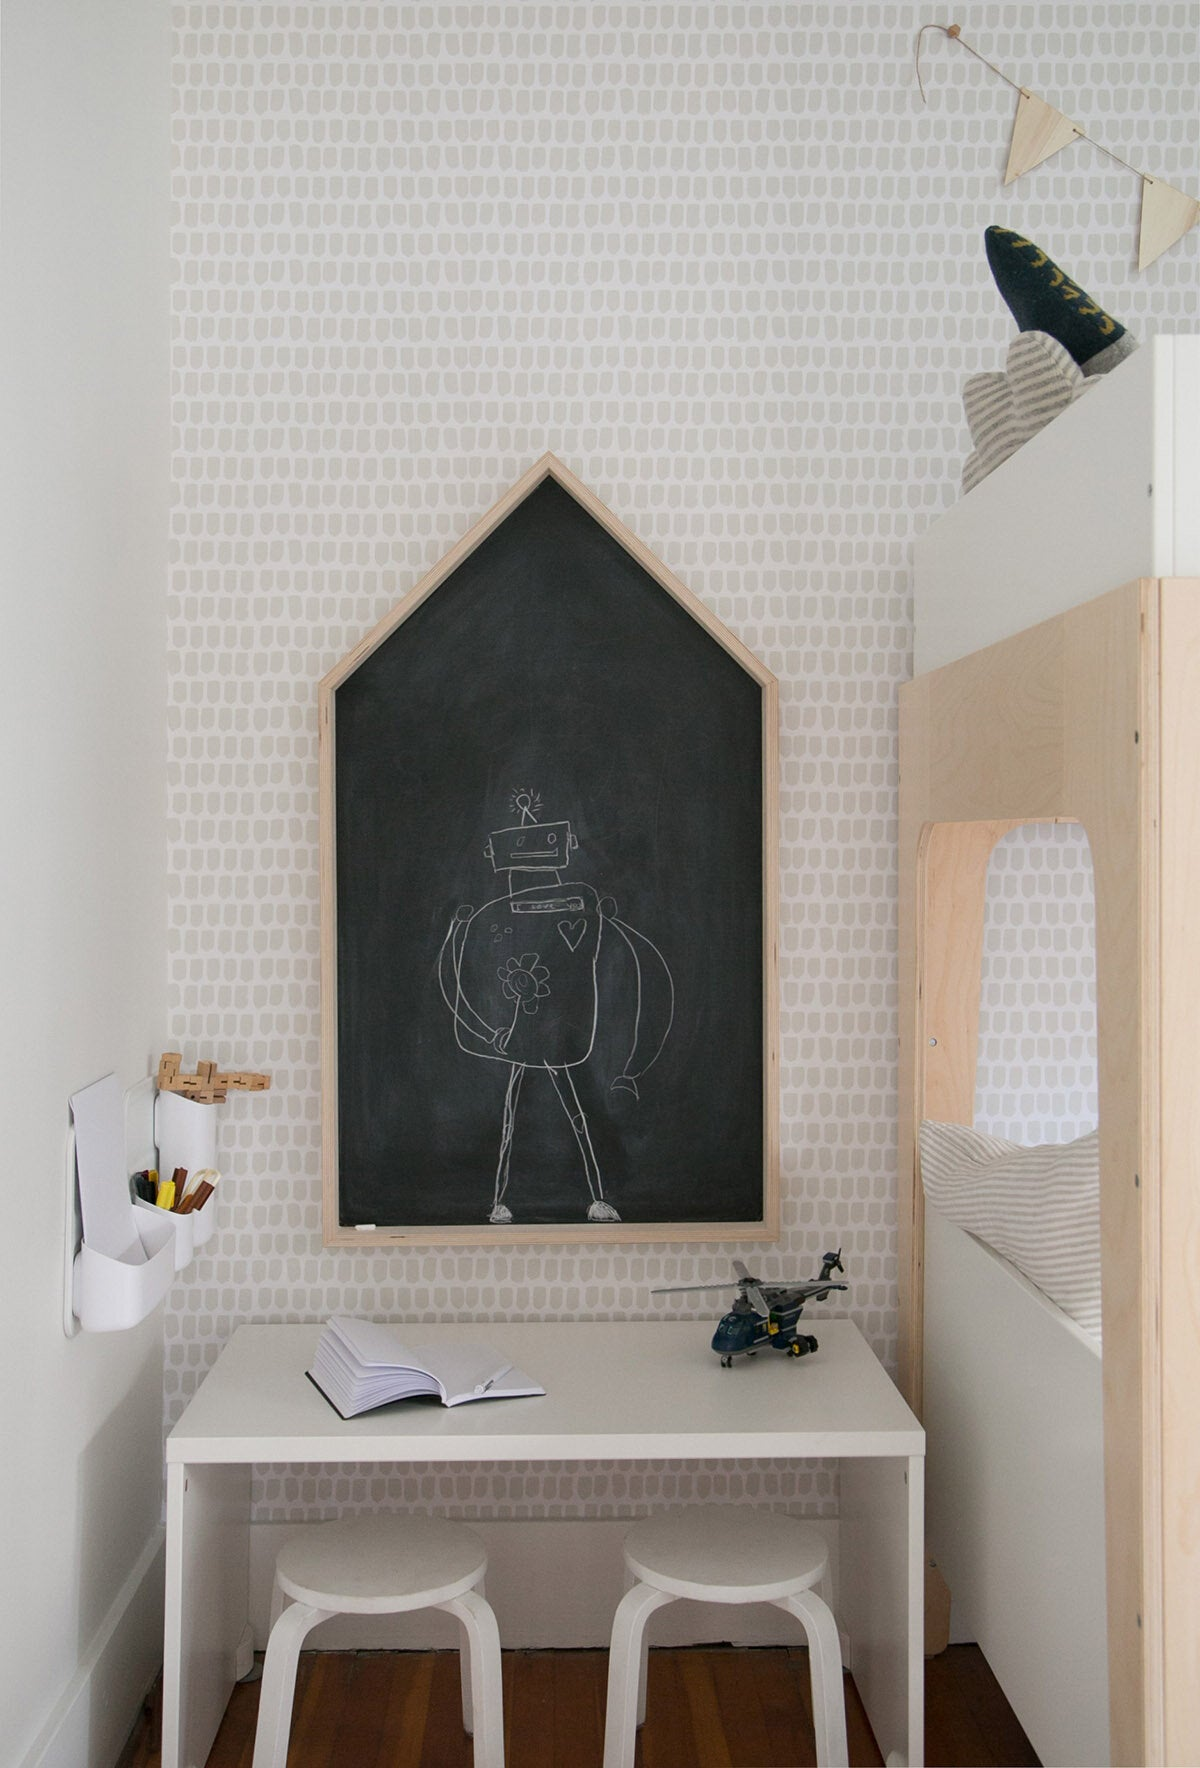 Modern boys room art corner with house shaped chalkboard wall, removable wallpaper and robot theme